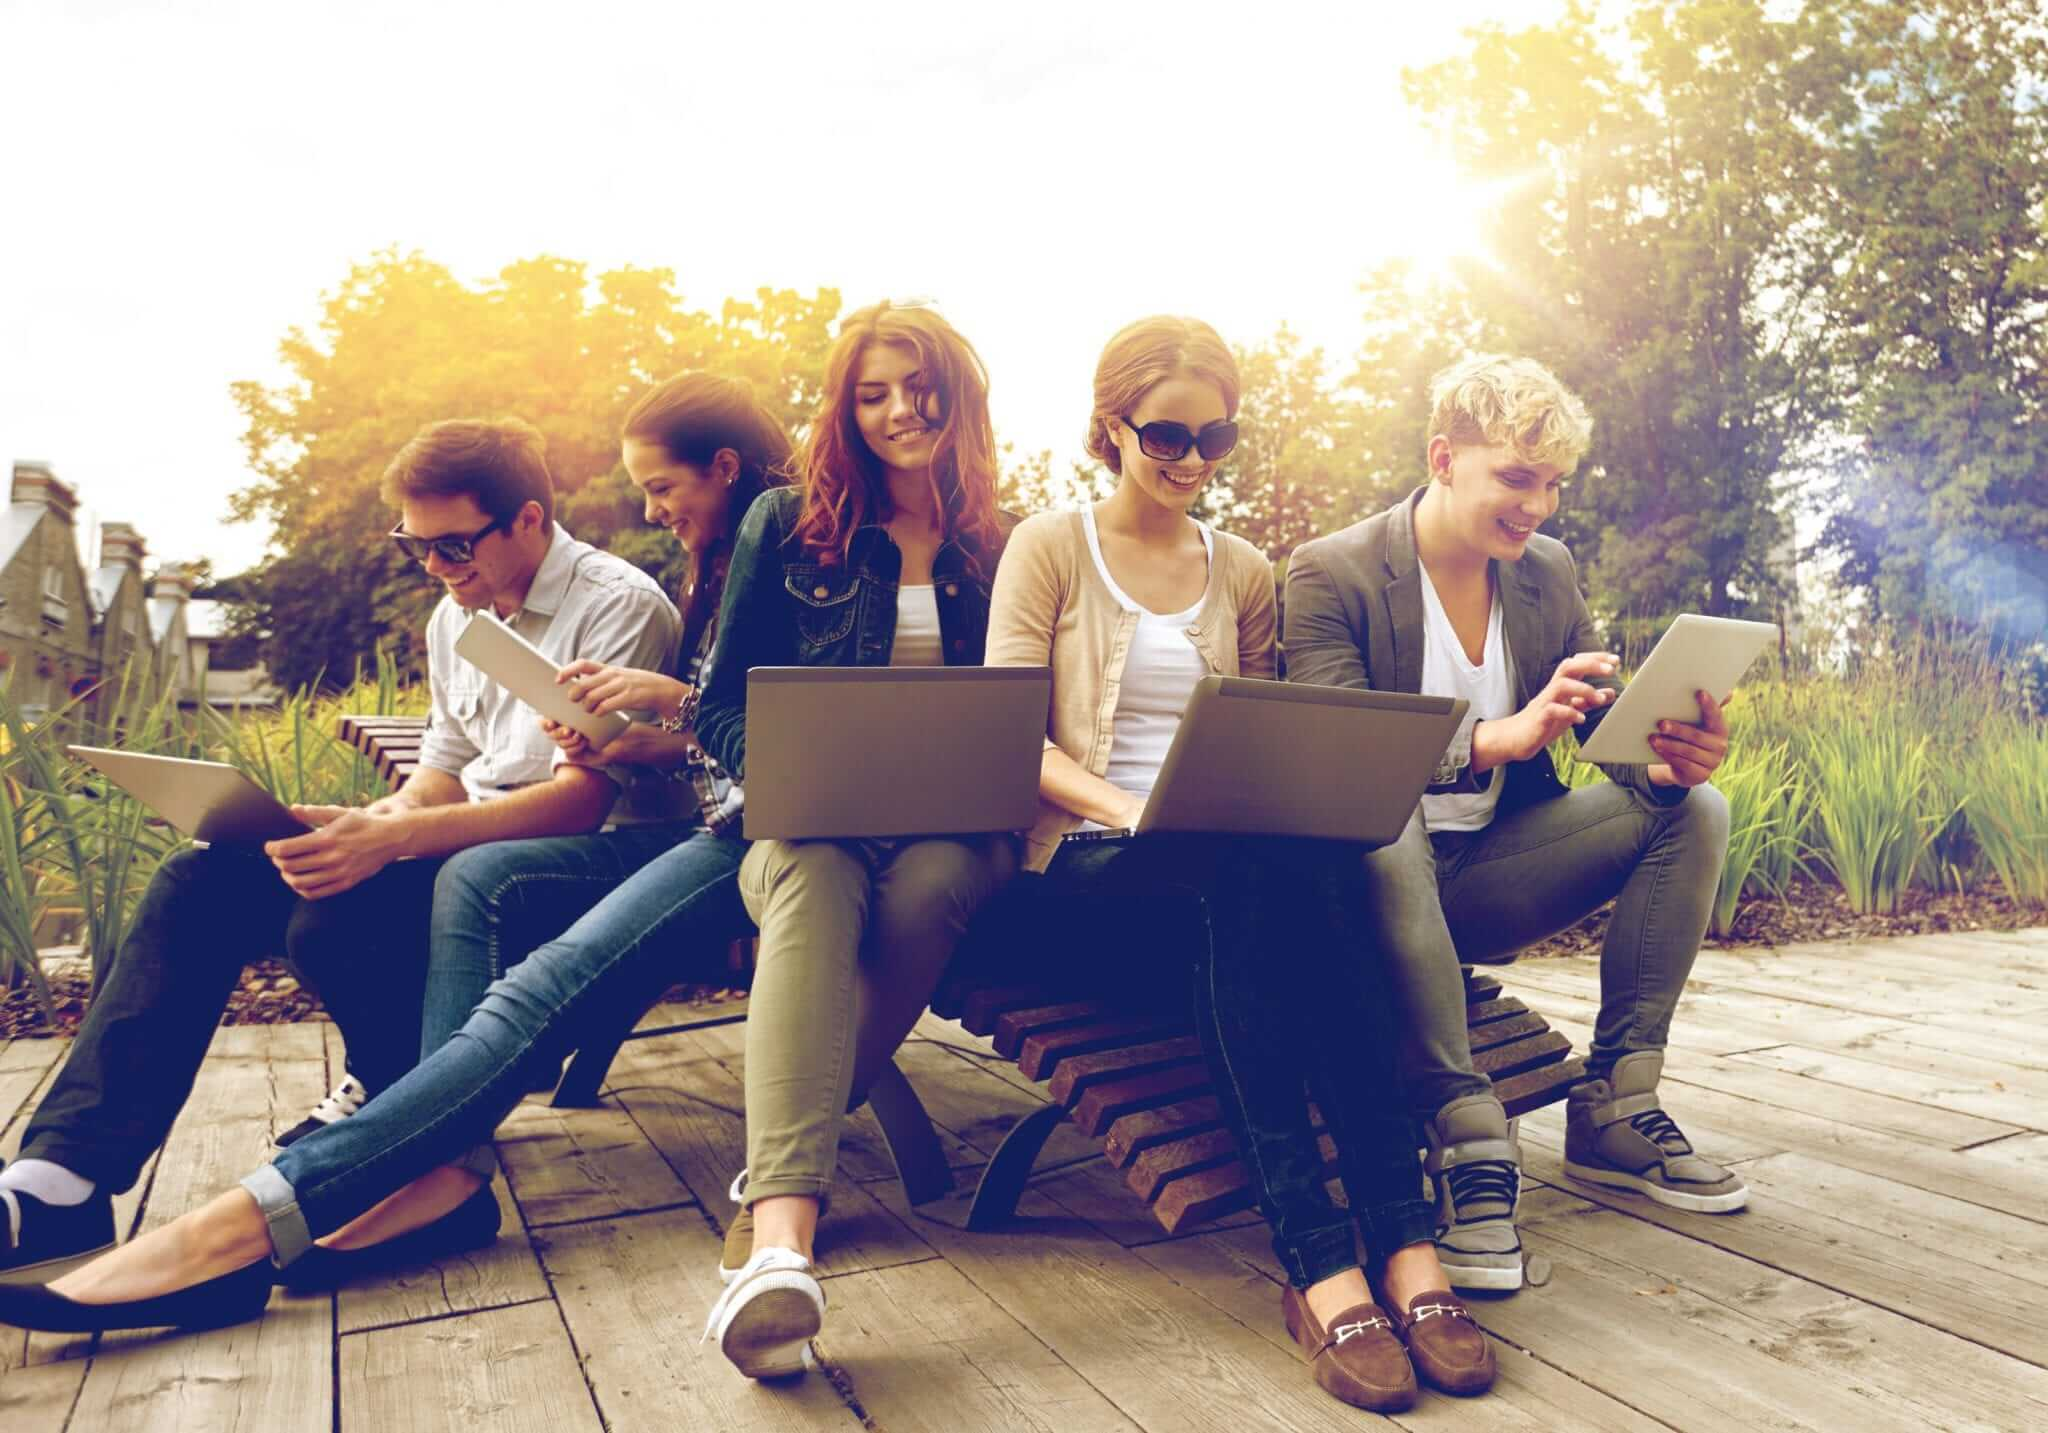 Students on laptops outside